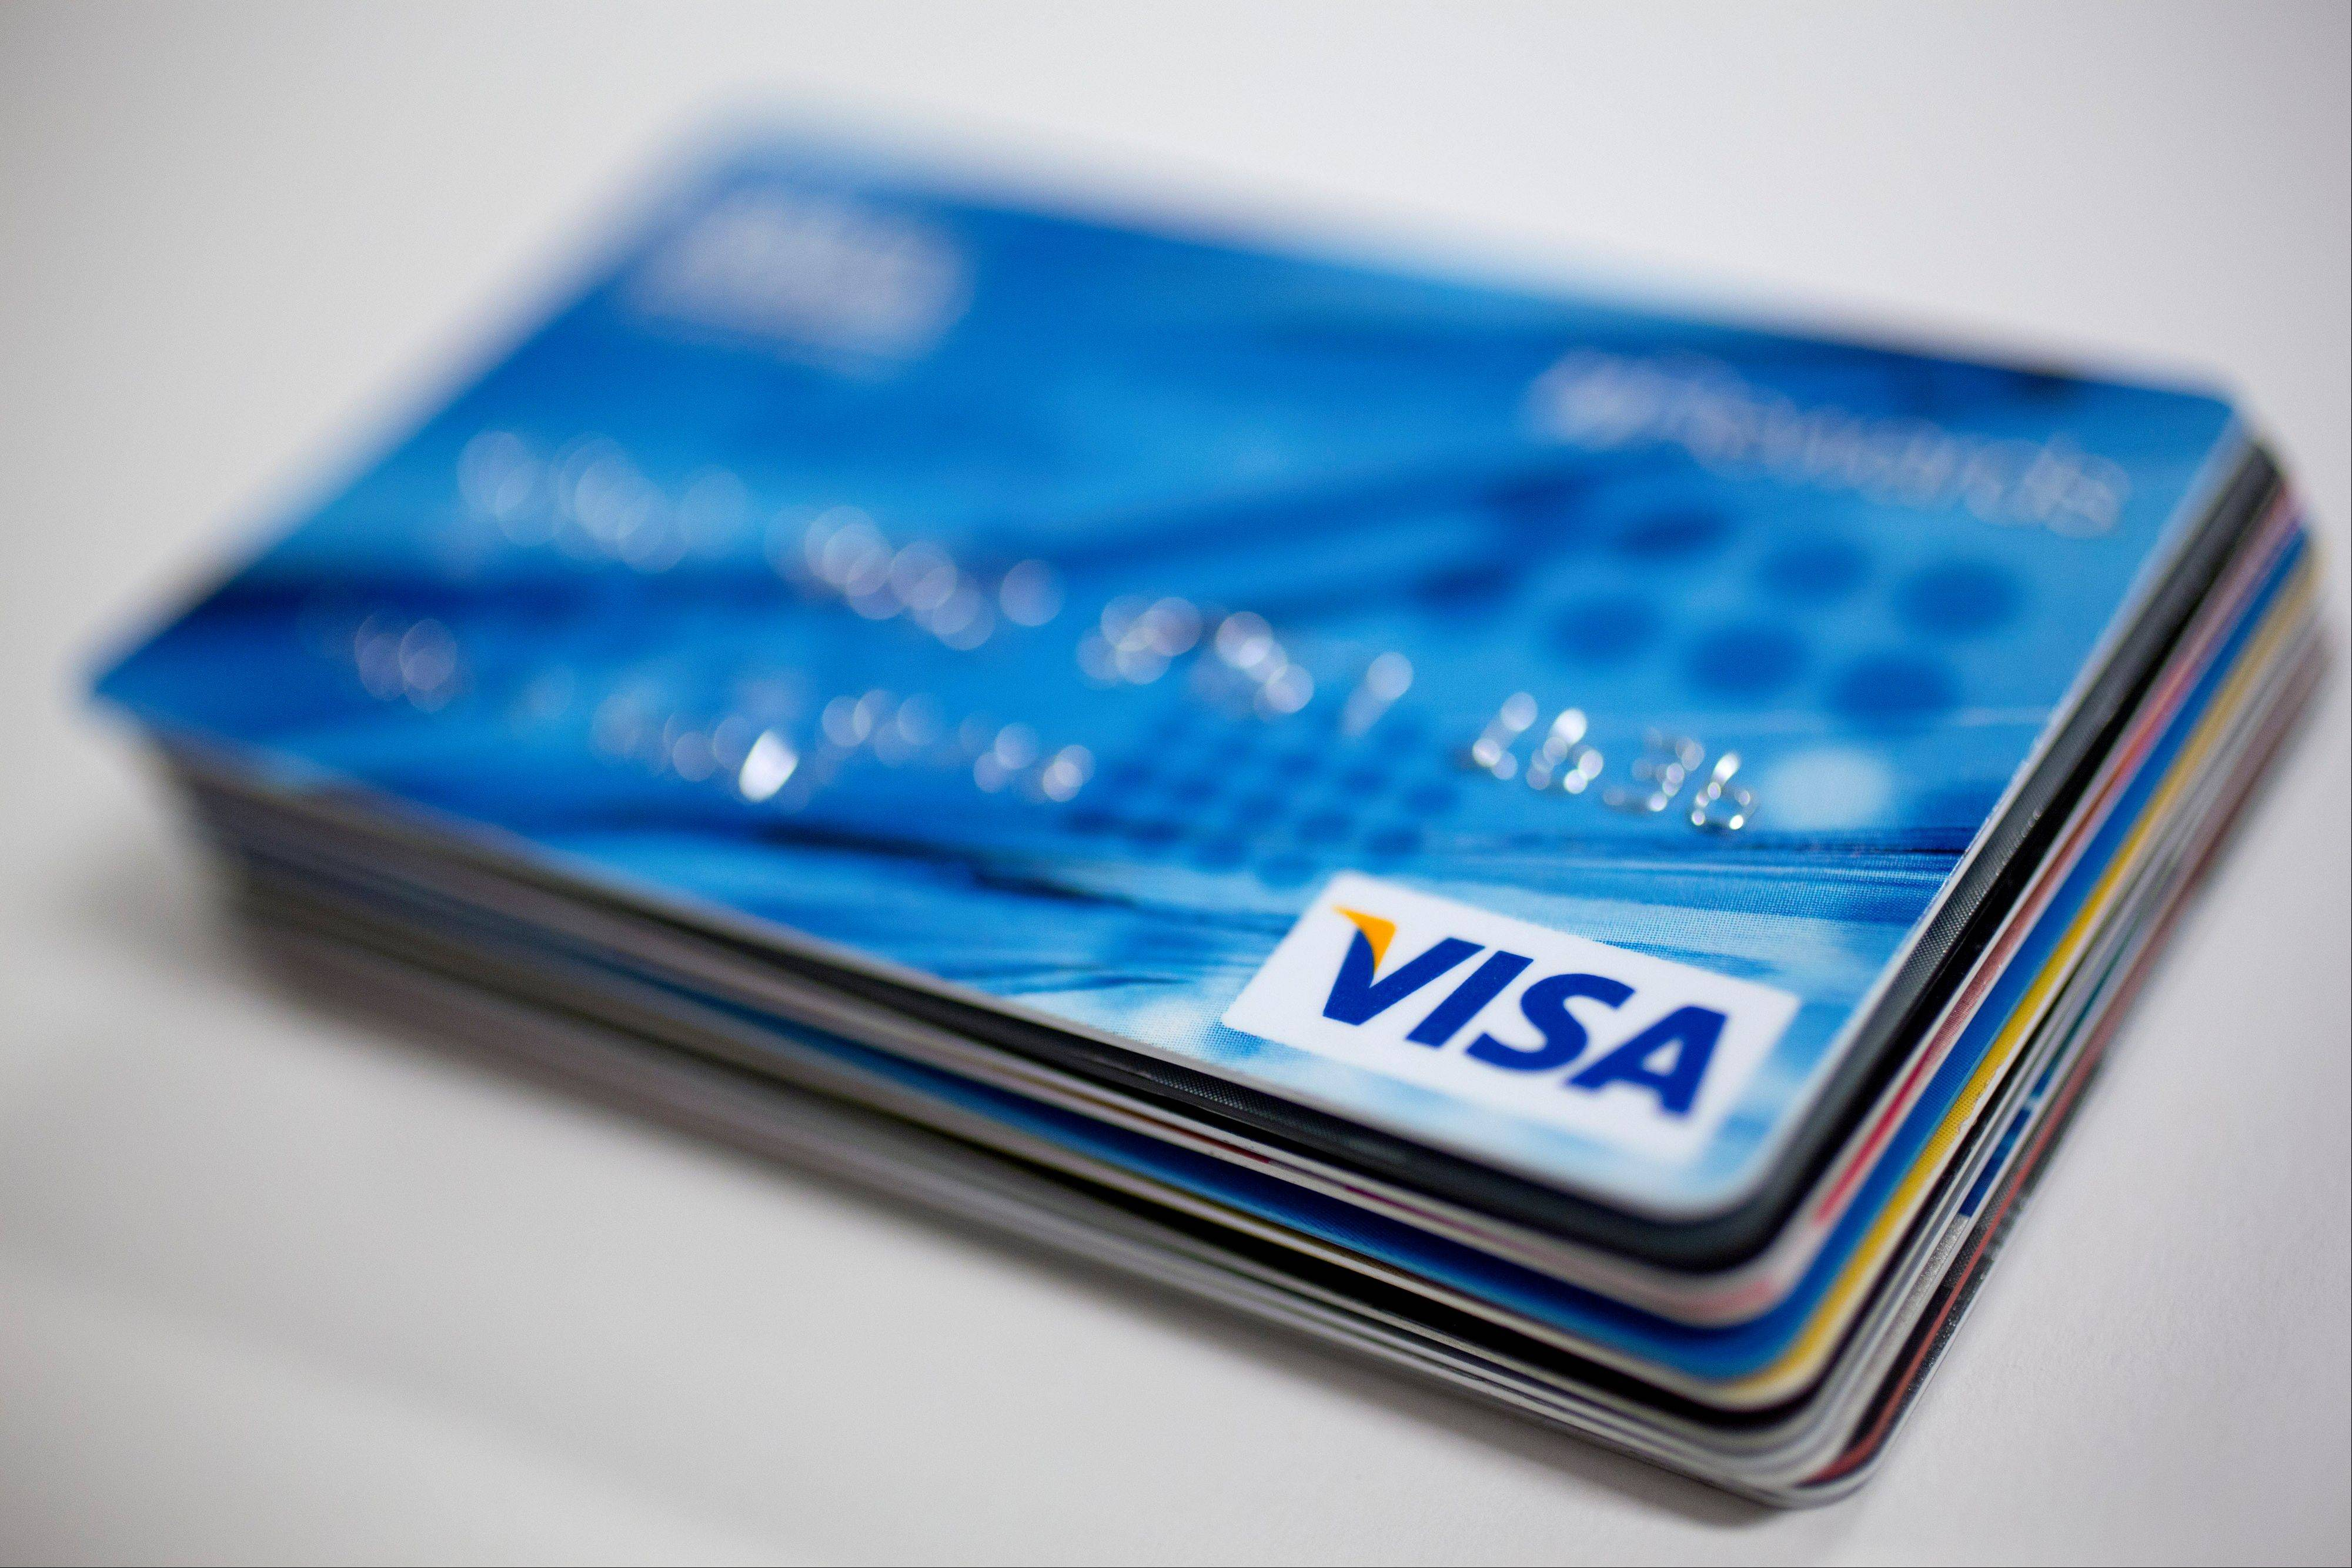 A Visa Inc. credit card sits on top of credit and debit cards arranged for a photograph in Washington, D.C., U.S., on Wednesday, Jan. 29, 2014.